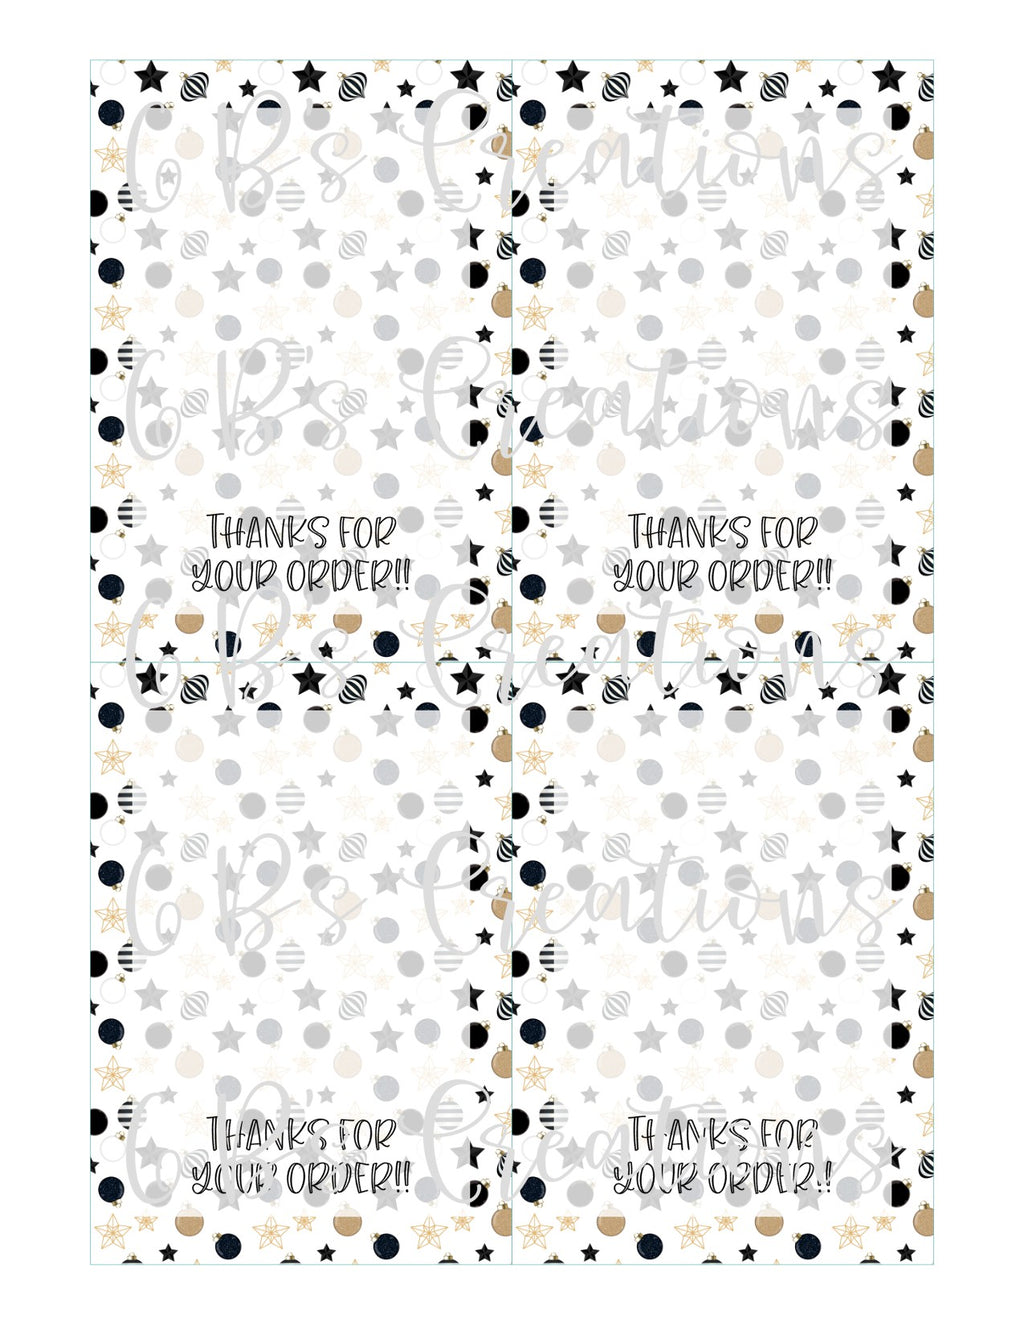 Thanks for your order Printable Tag - Black and Gold Stars